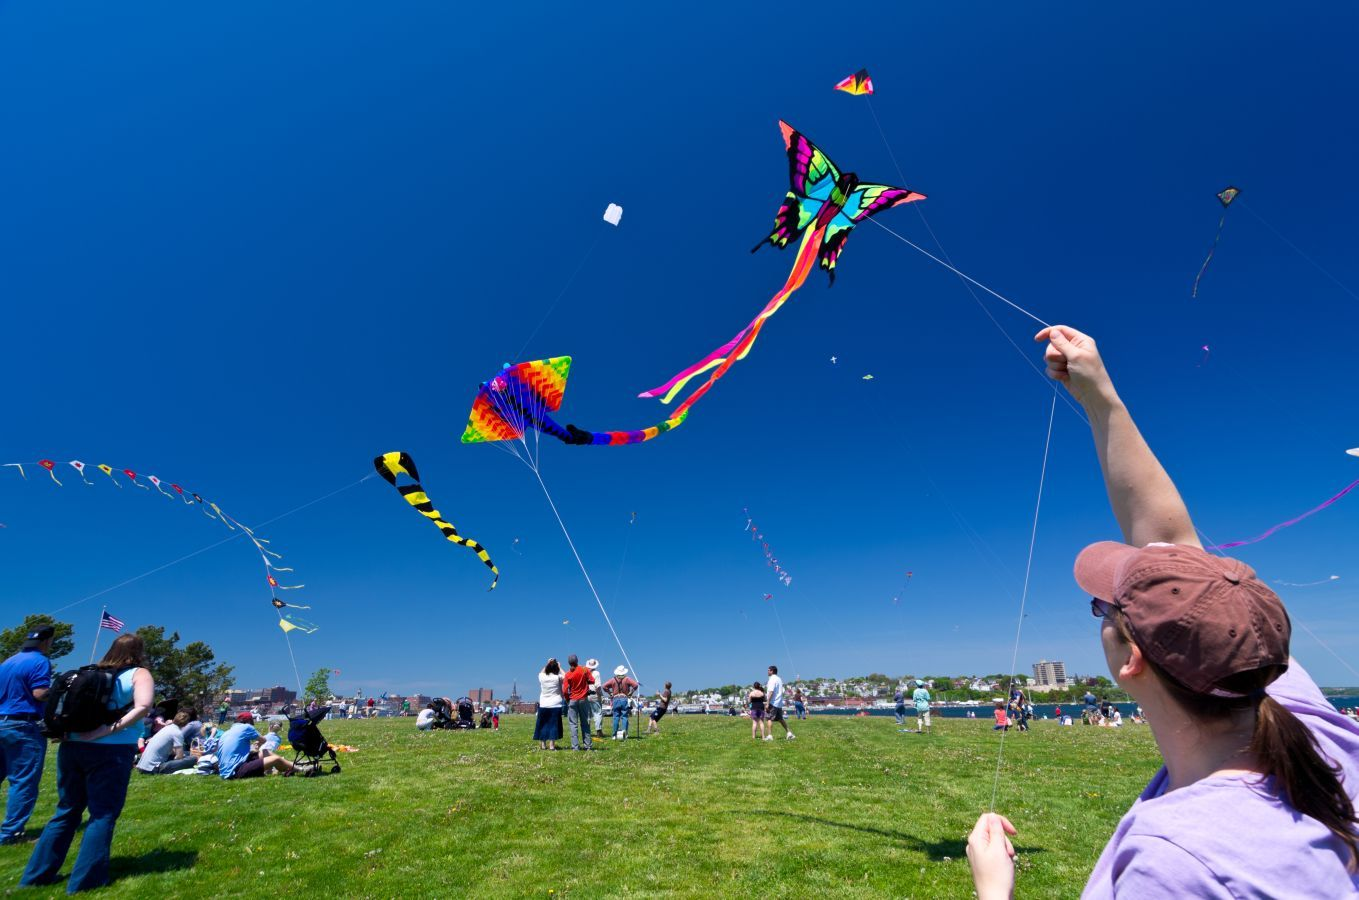 Kite Flying wallpaper with HD Quality kiteFlying kiteHD kite 1359x900